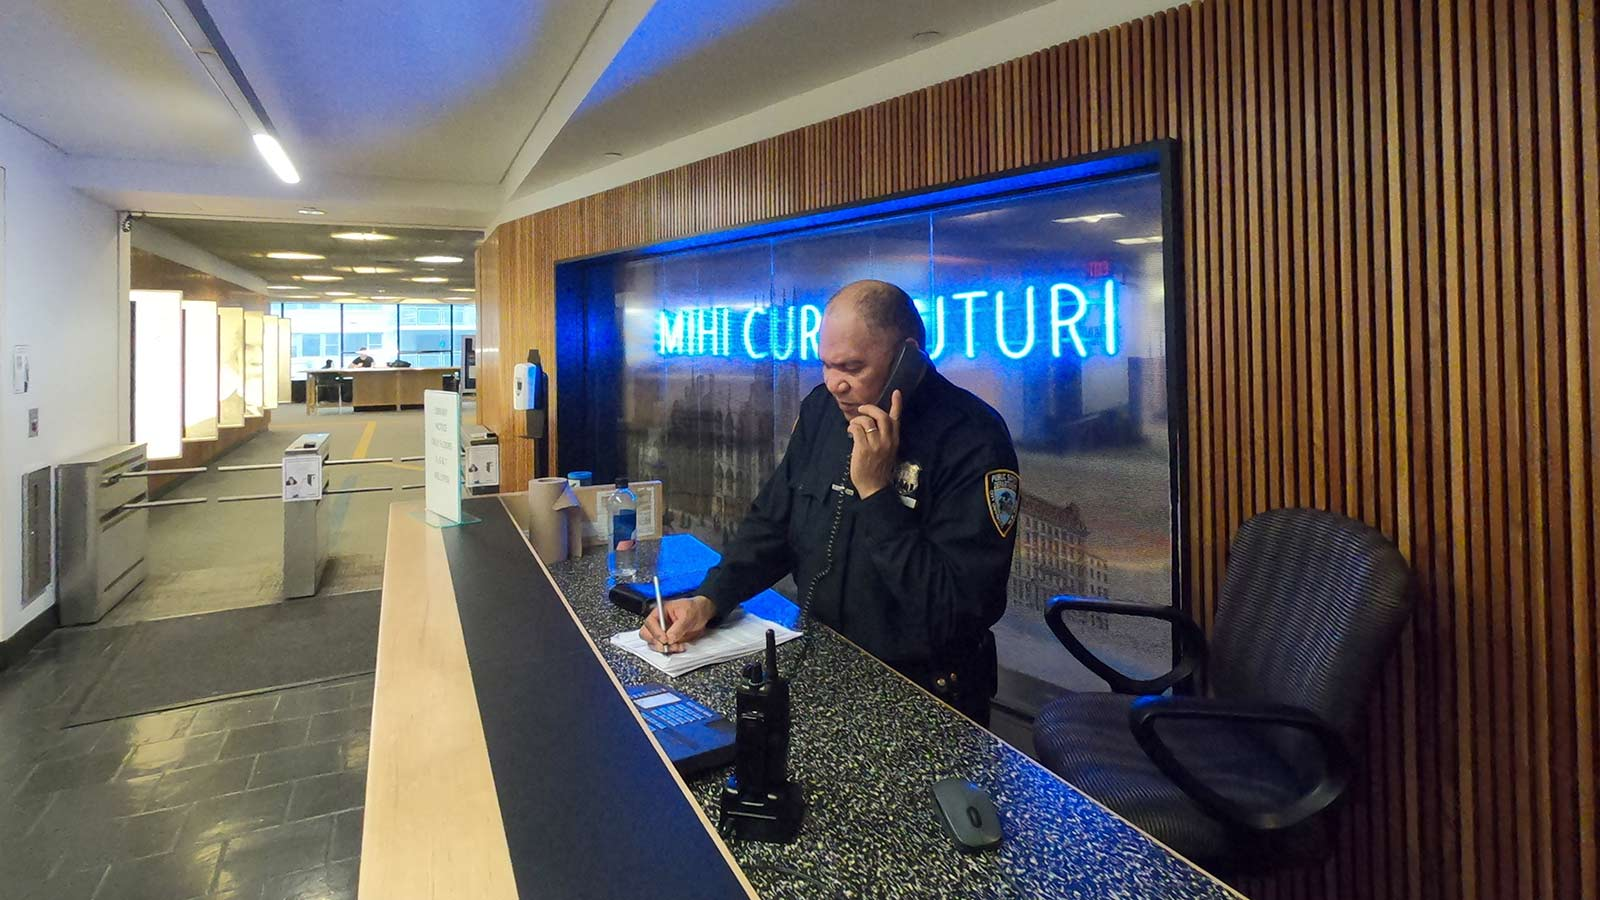 Security person at front desk on phone